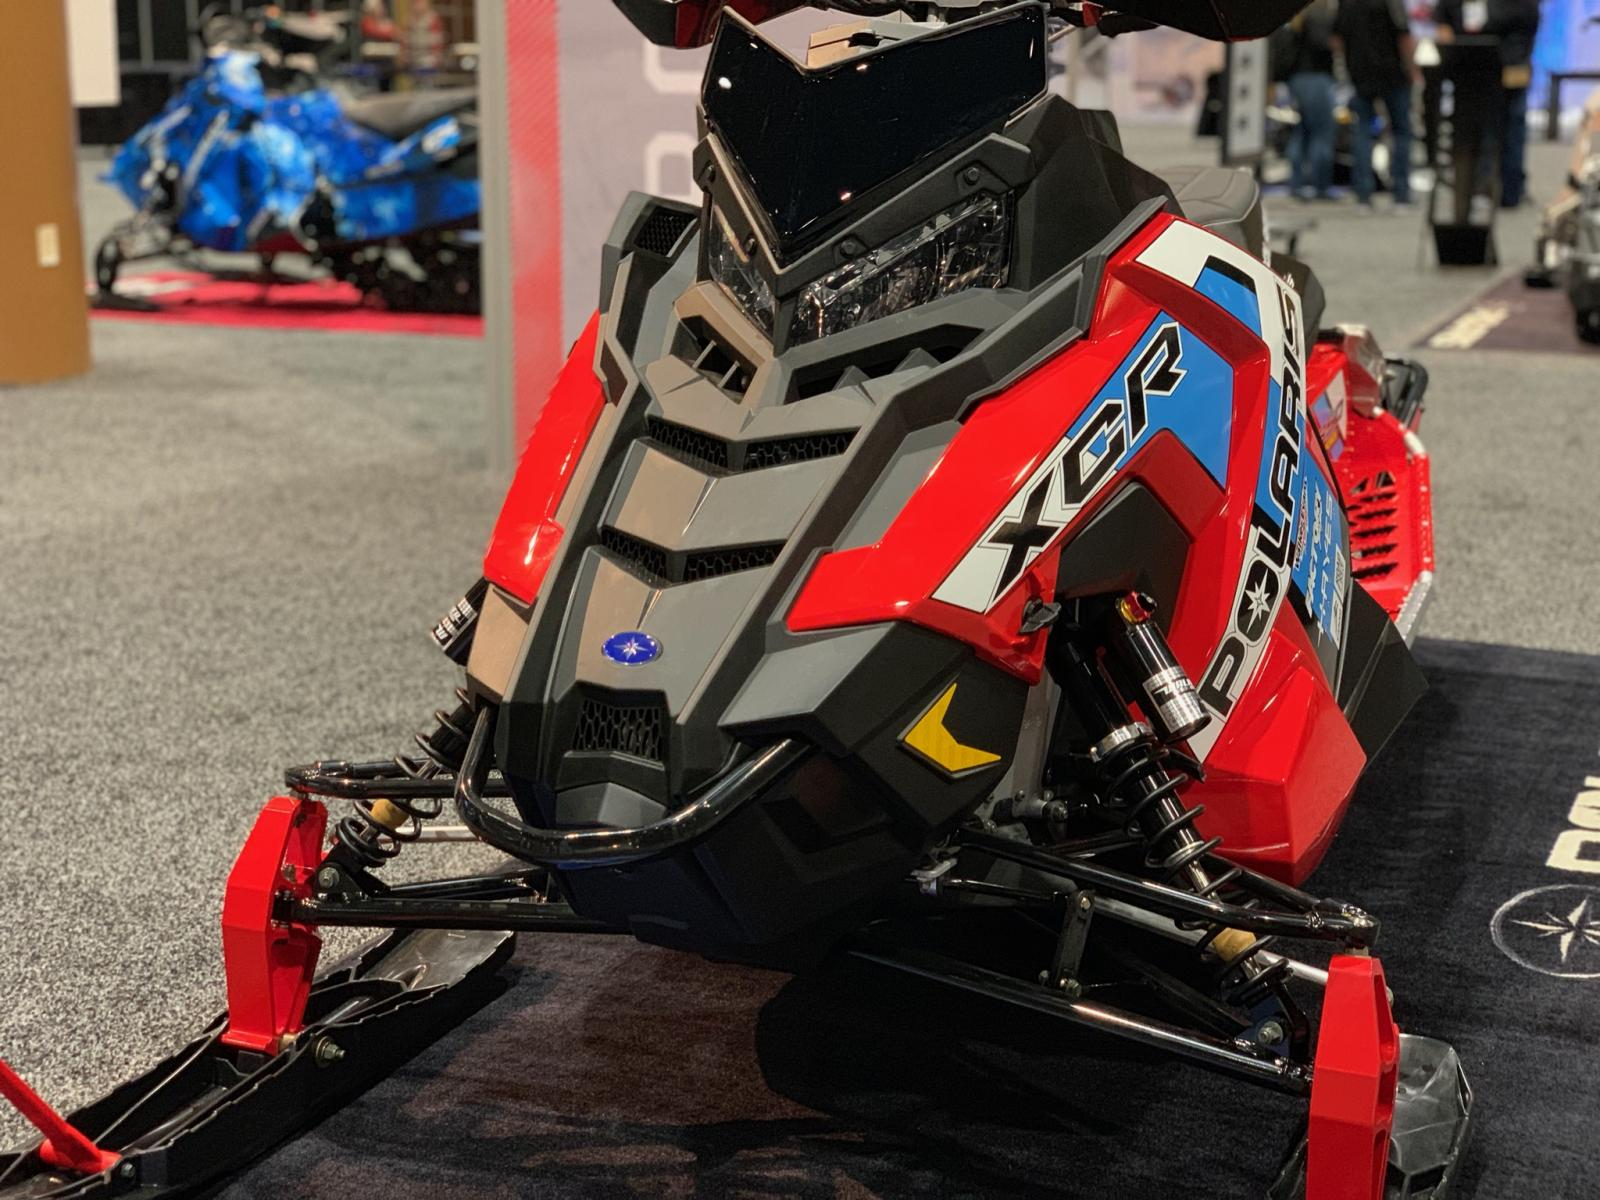 2020 XCR pics from the dealer show - HCS Snowmobile Forums